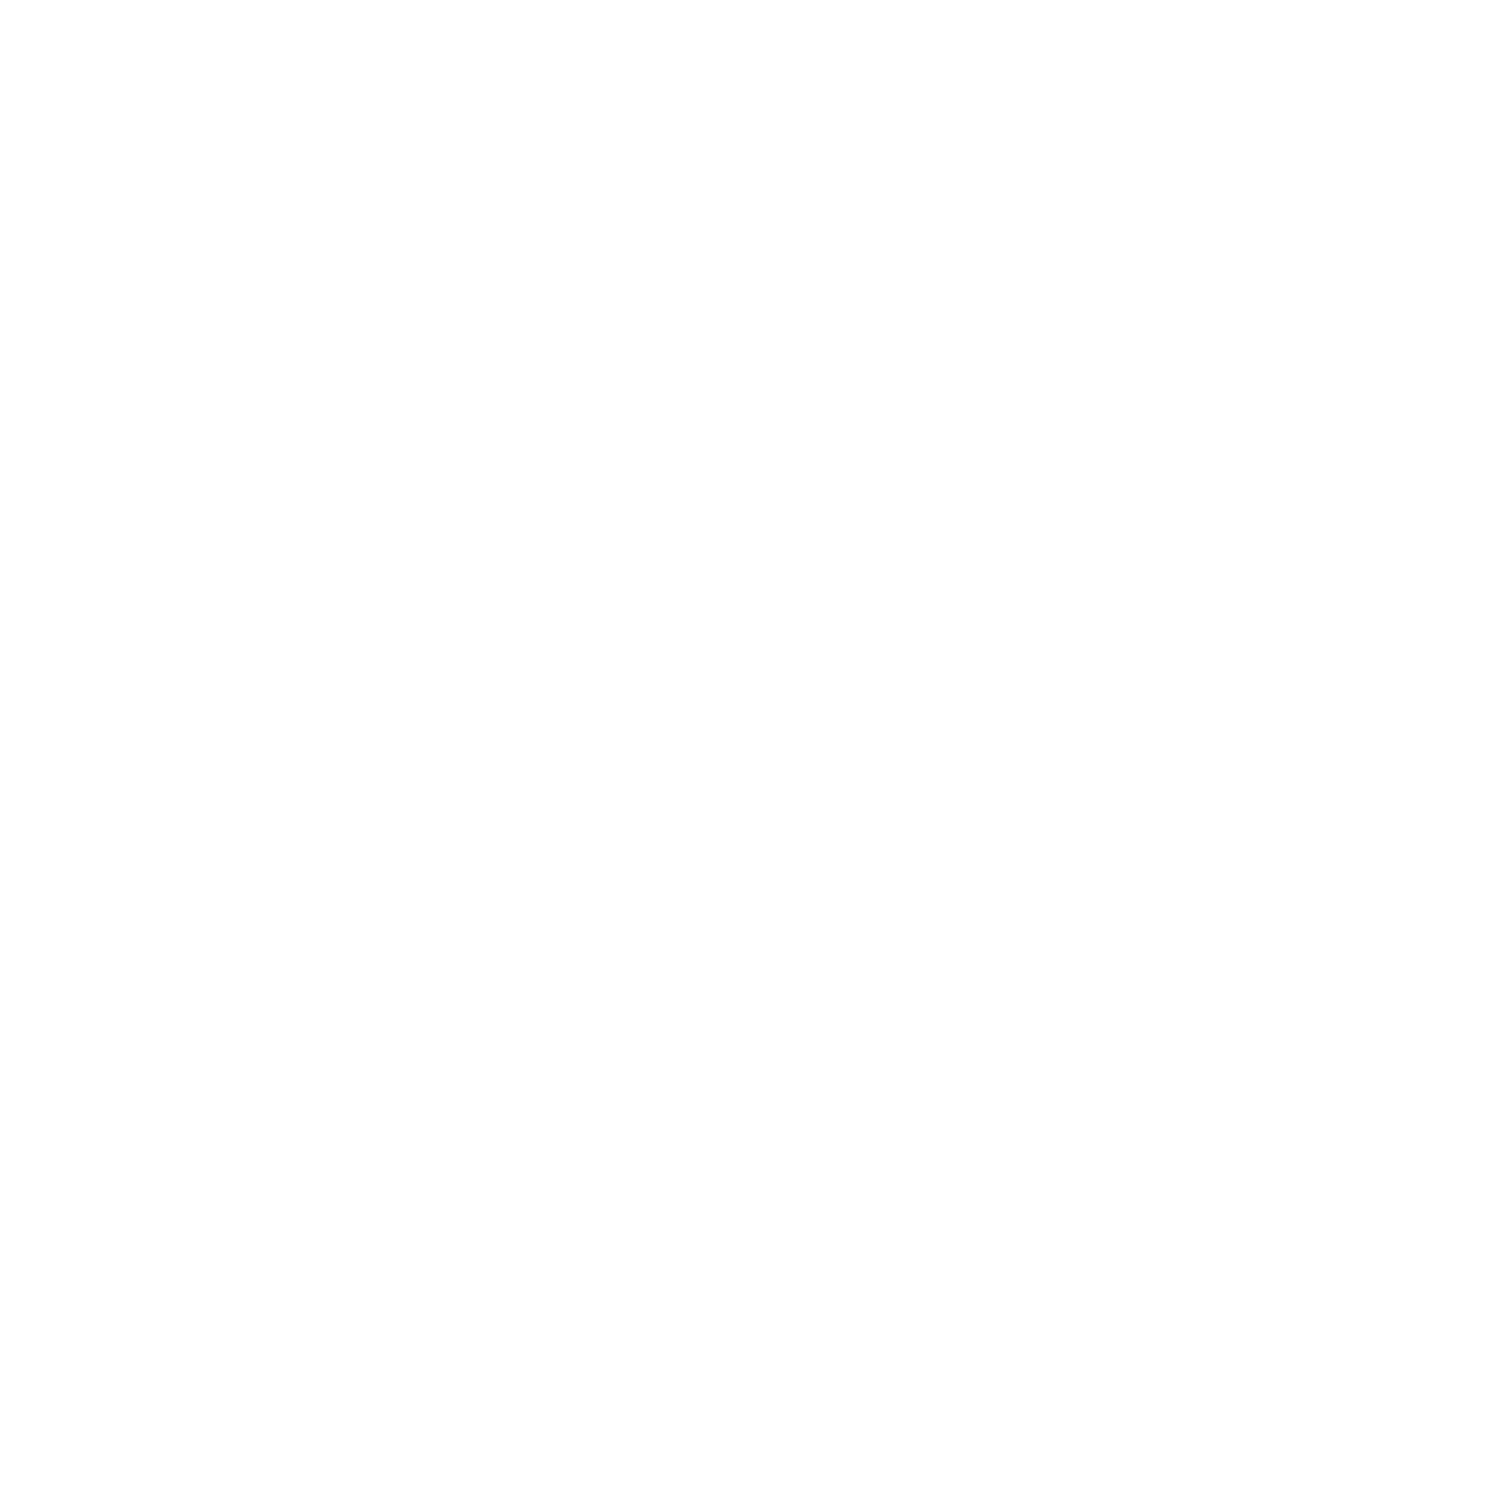 The Dahlias